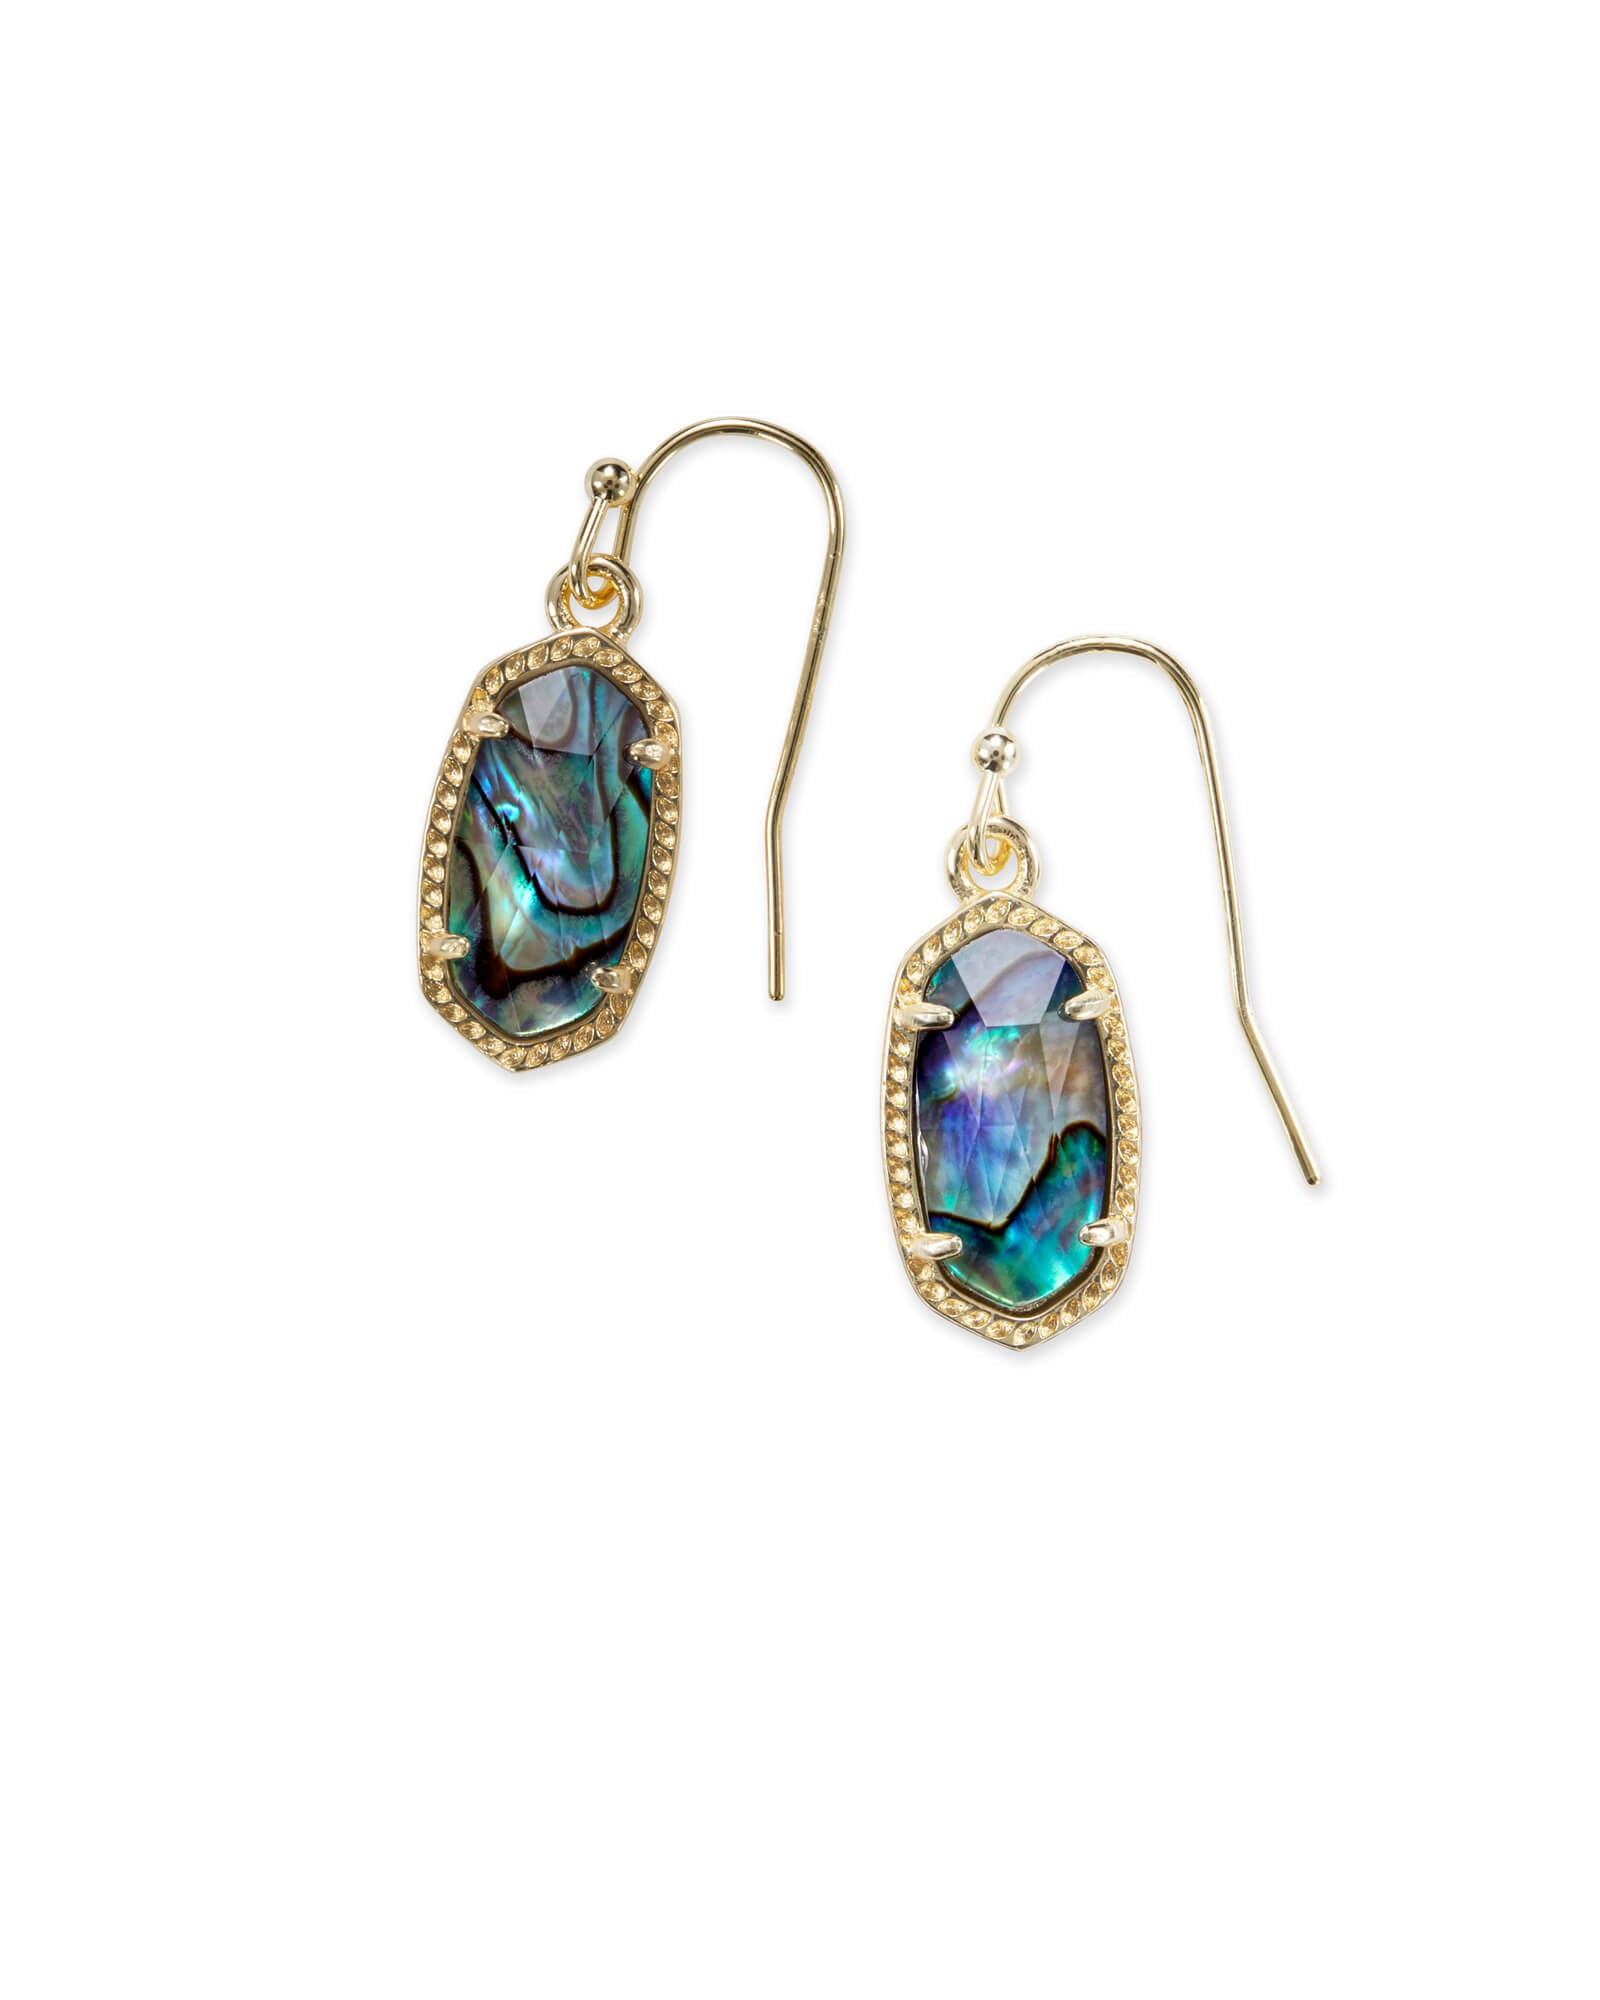 Kendra Scott Lee Earring - Showroom56